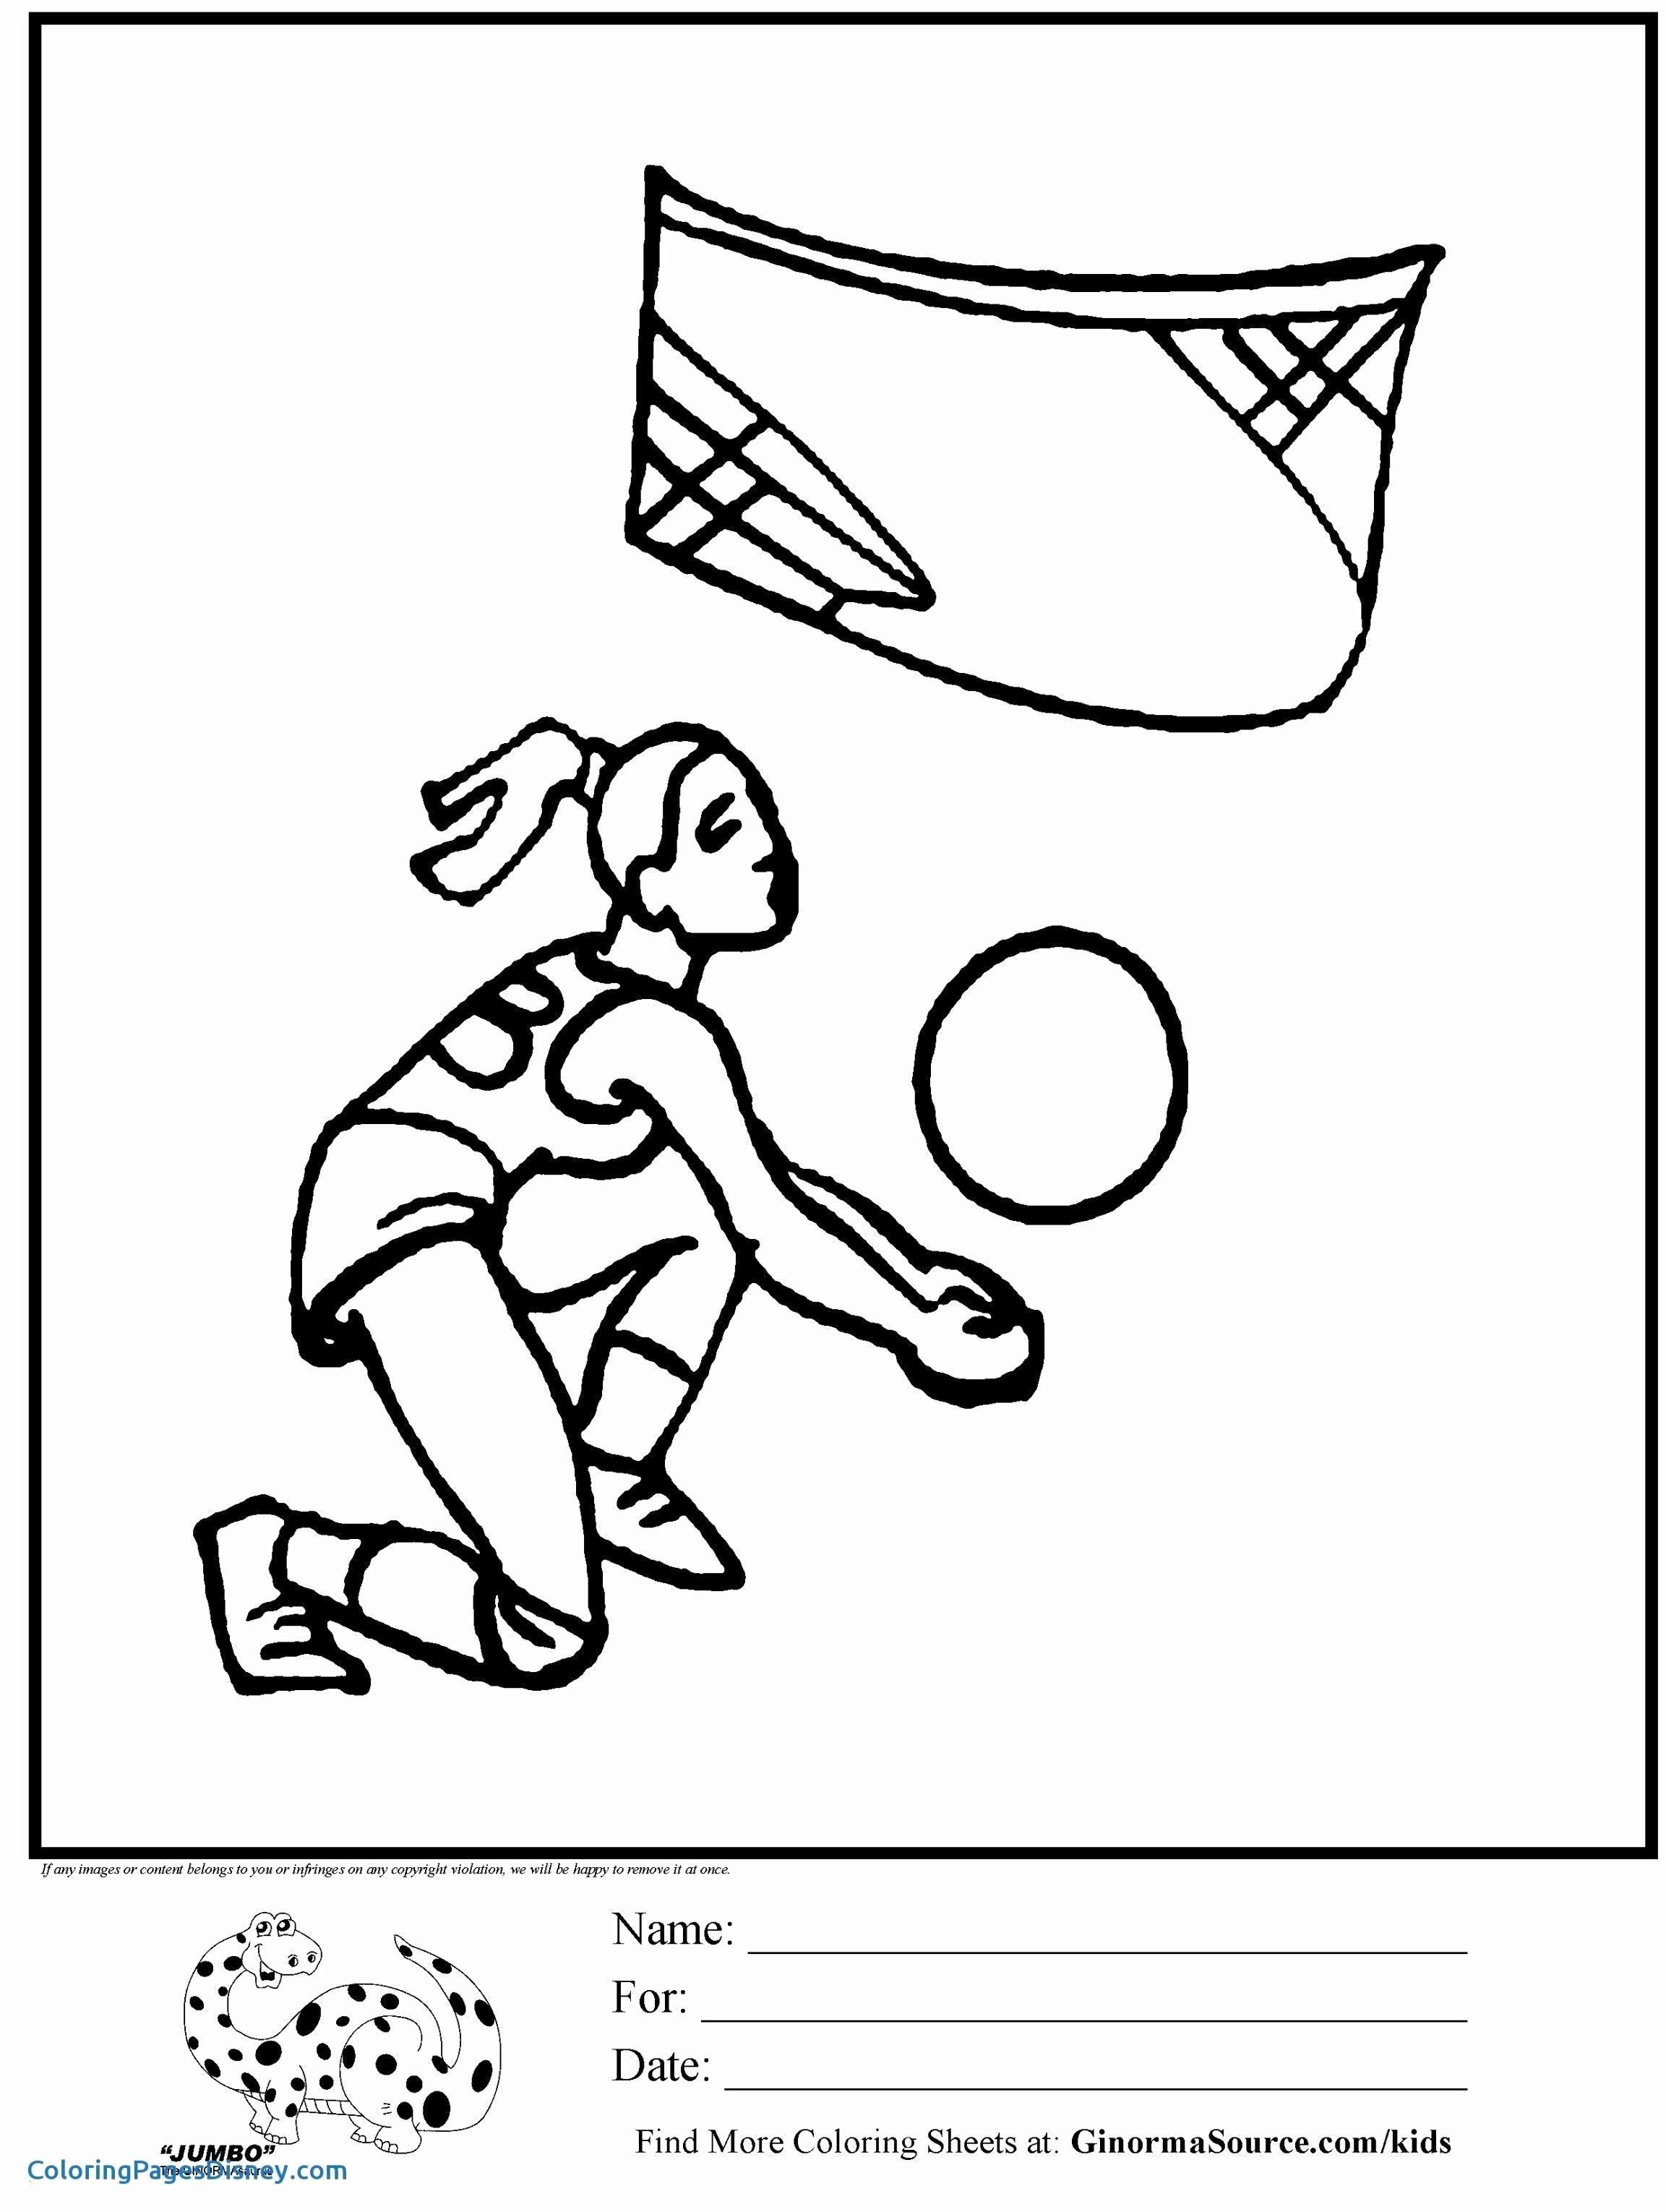 Child Boy One Leg Coloring Page